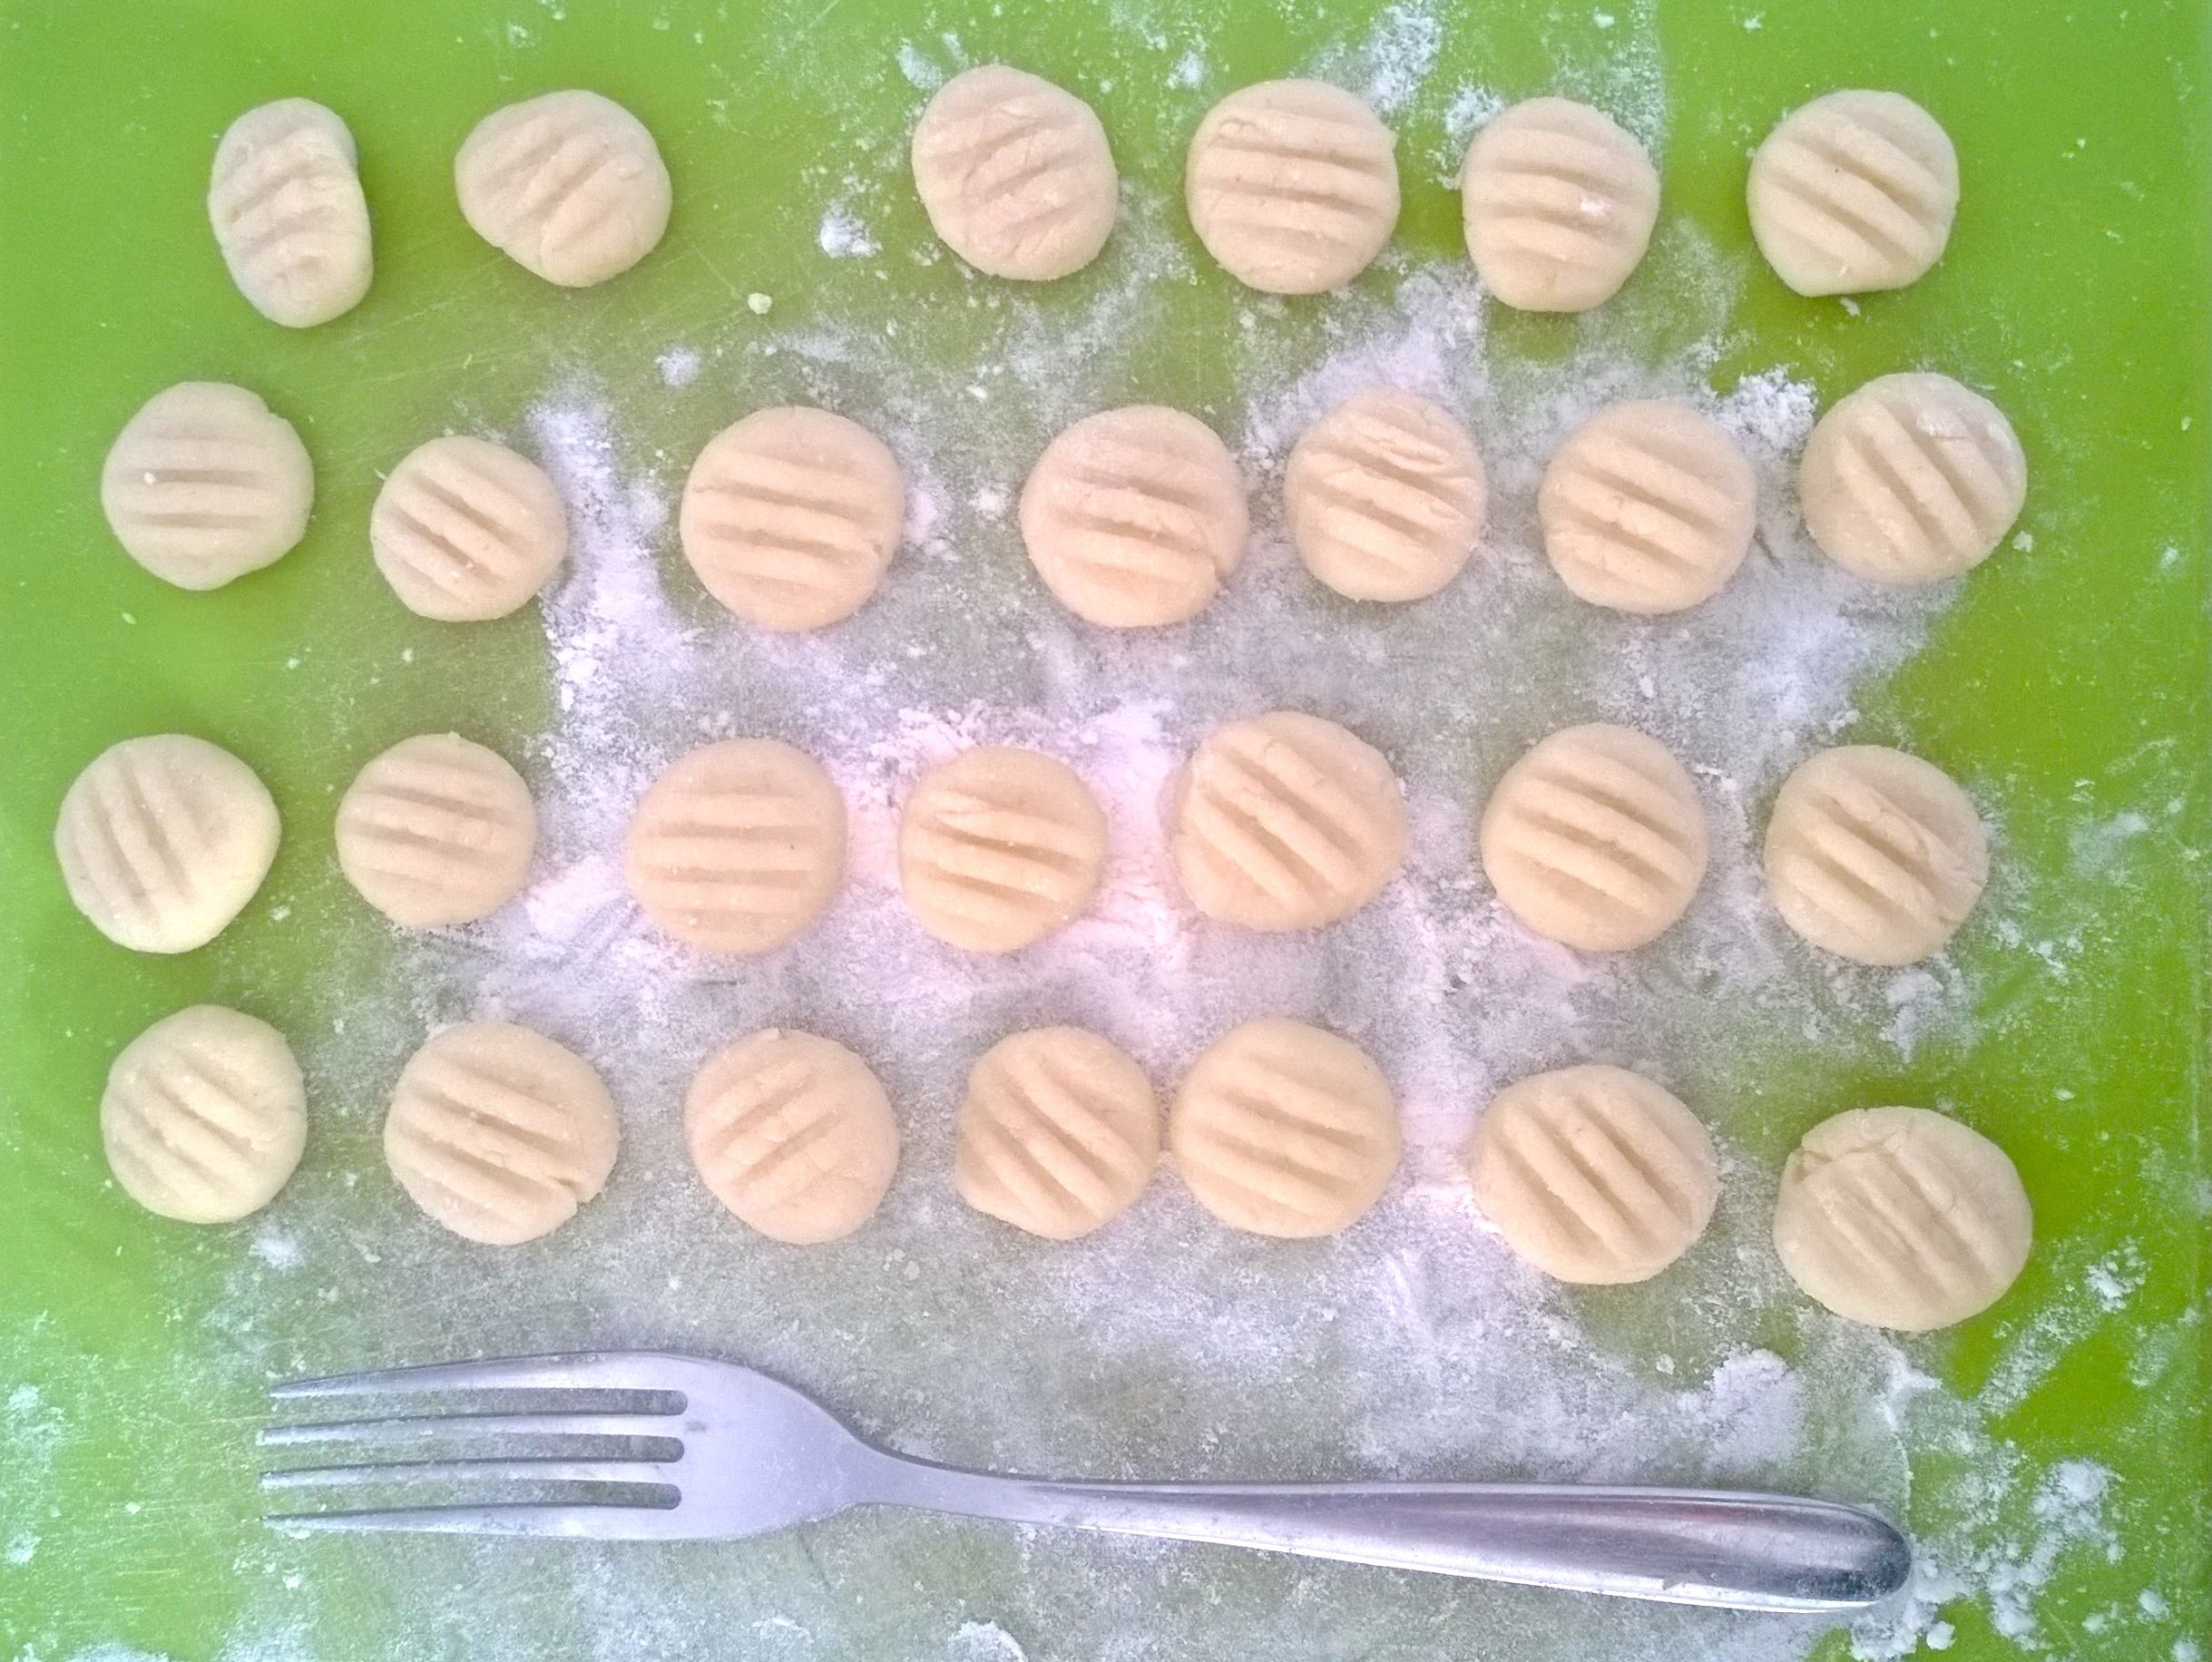 Homemade gnocchi (another phone photo - my camera was stolen a few weeks ago so bear with me!)